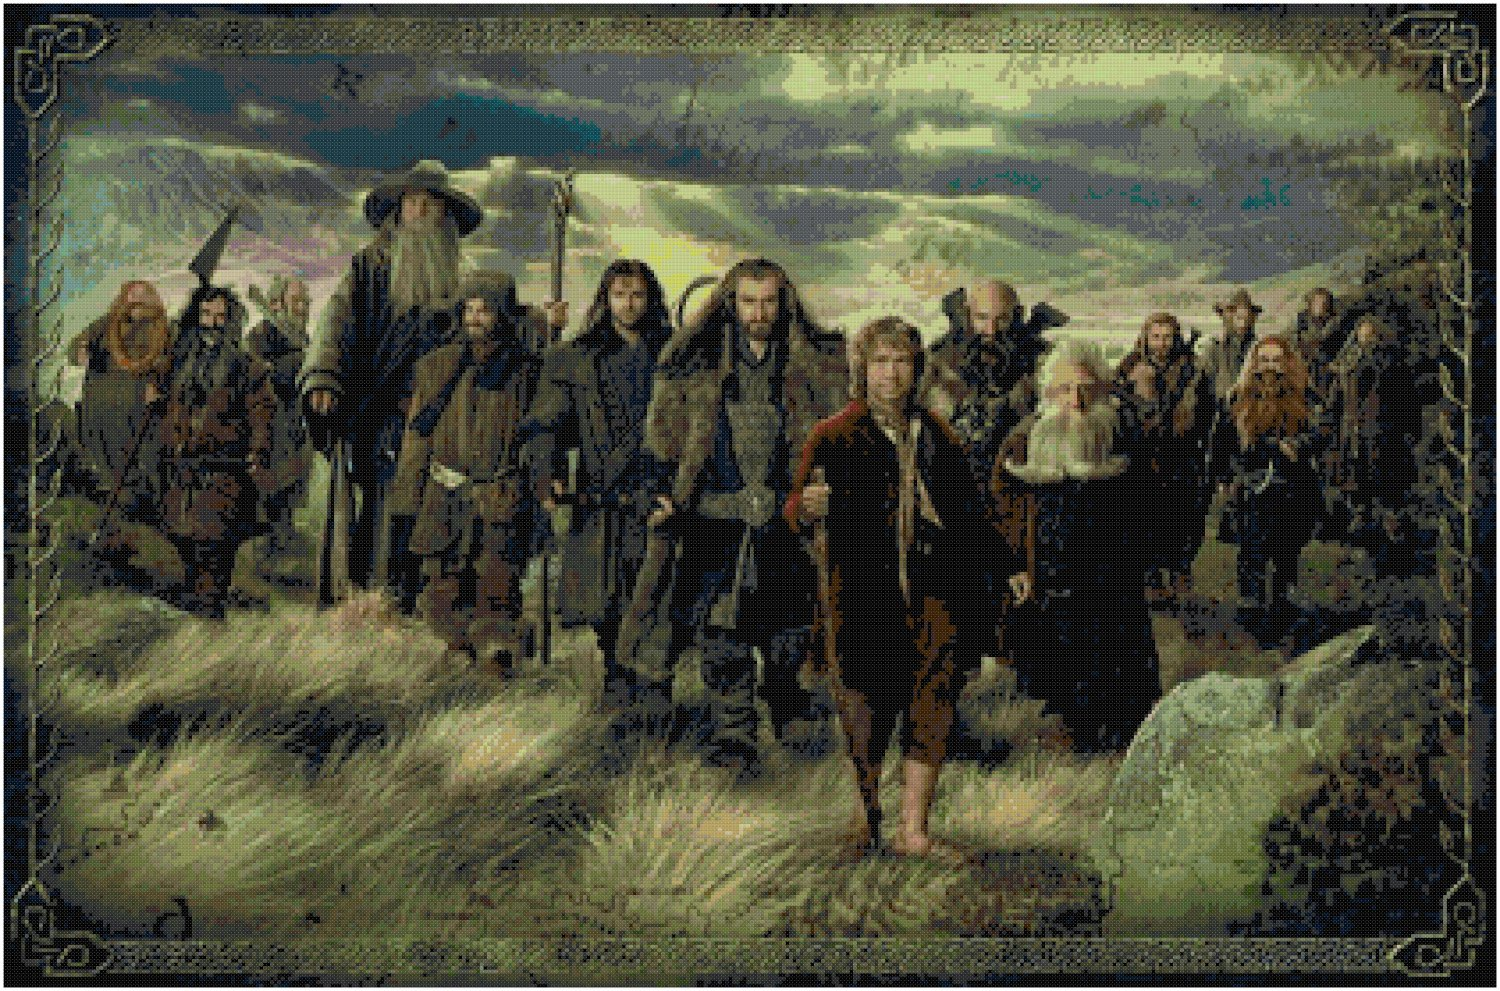 The Hobbit An Unexpected Journey Chronicles II Creatures and Characters Weta on Amazoncom FREE shipping on qualifying offers The Hobbit An Unexpected